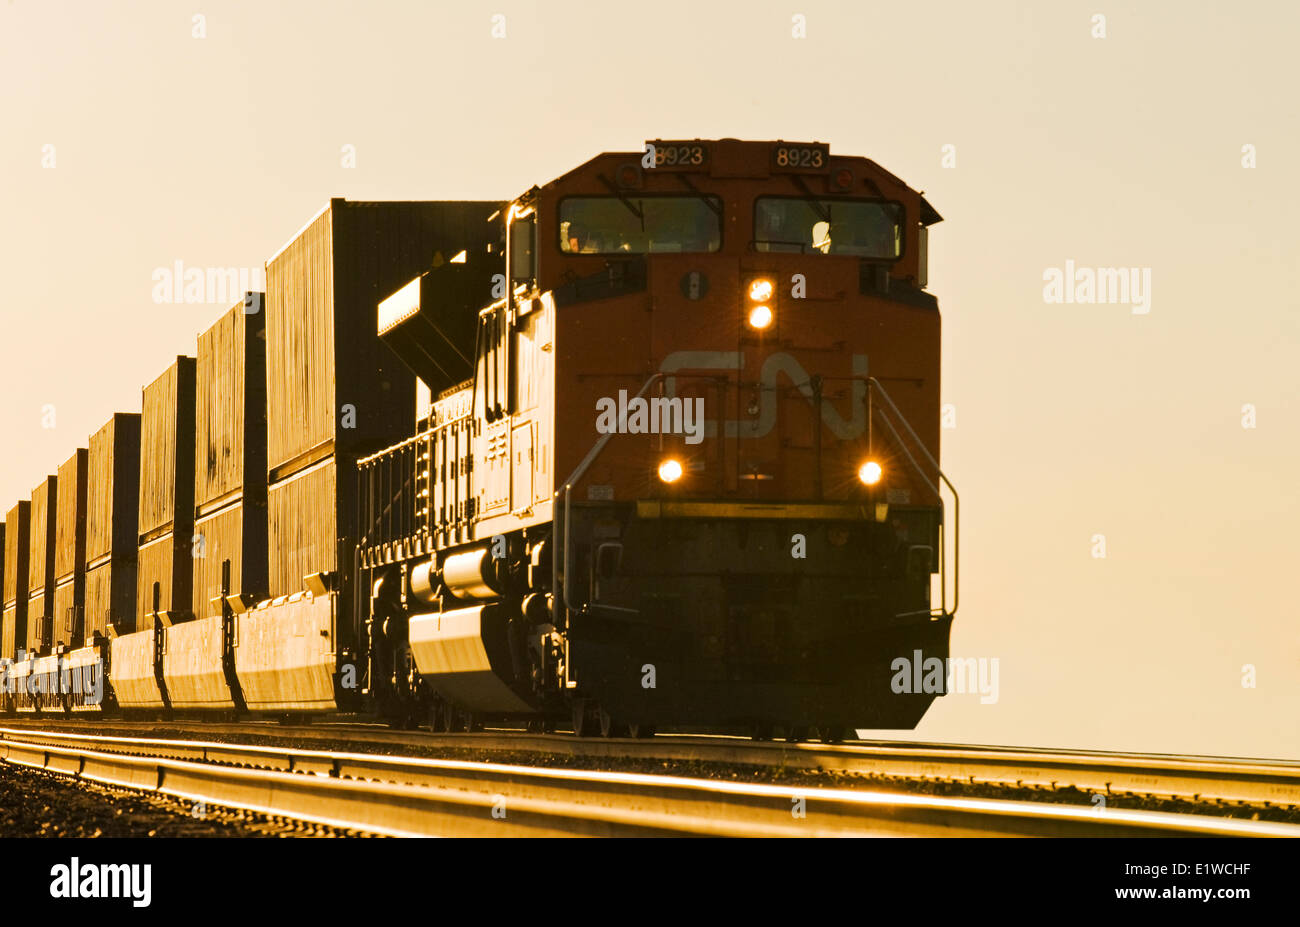 locomotive pulling rail cars carrying containers, near Winnipeg, Manitoba, Canada - Stock Image